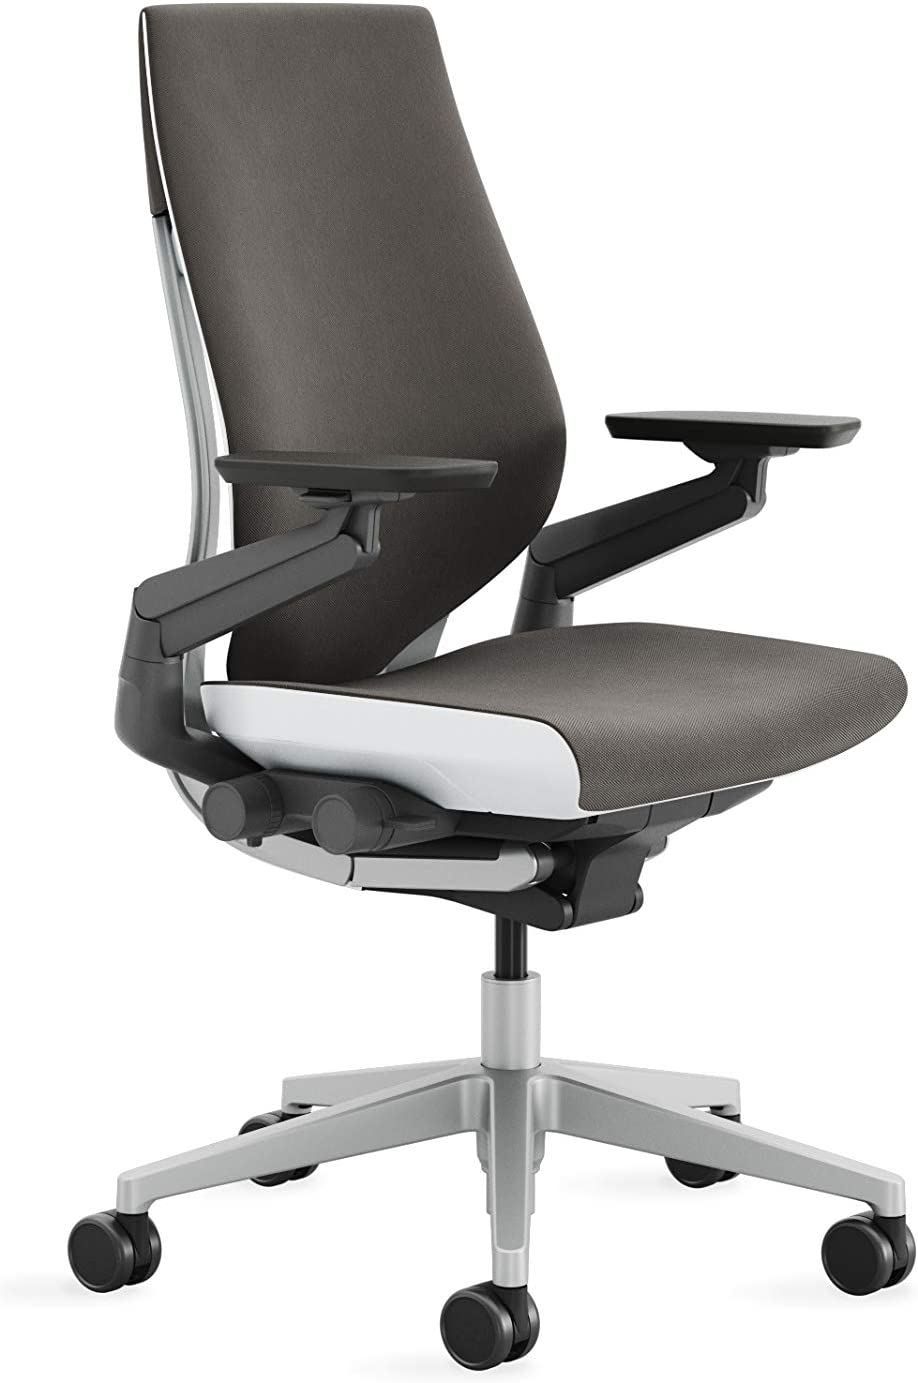 71Vz07iVCCL. AC SL1500 - What is The Best Chair For Sciatica Nerve Problems? Get Relief from Sciatica Pain - ChairPicks